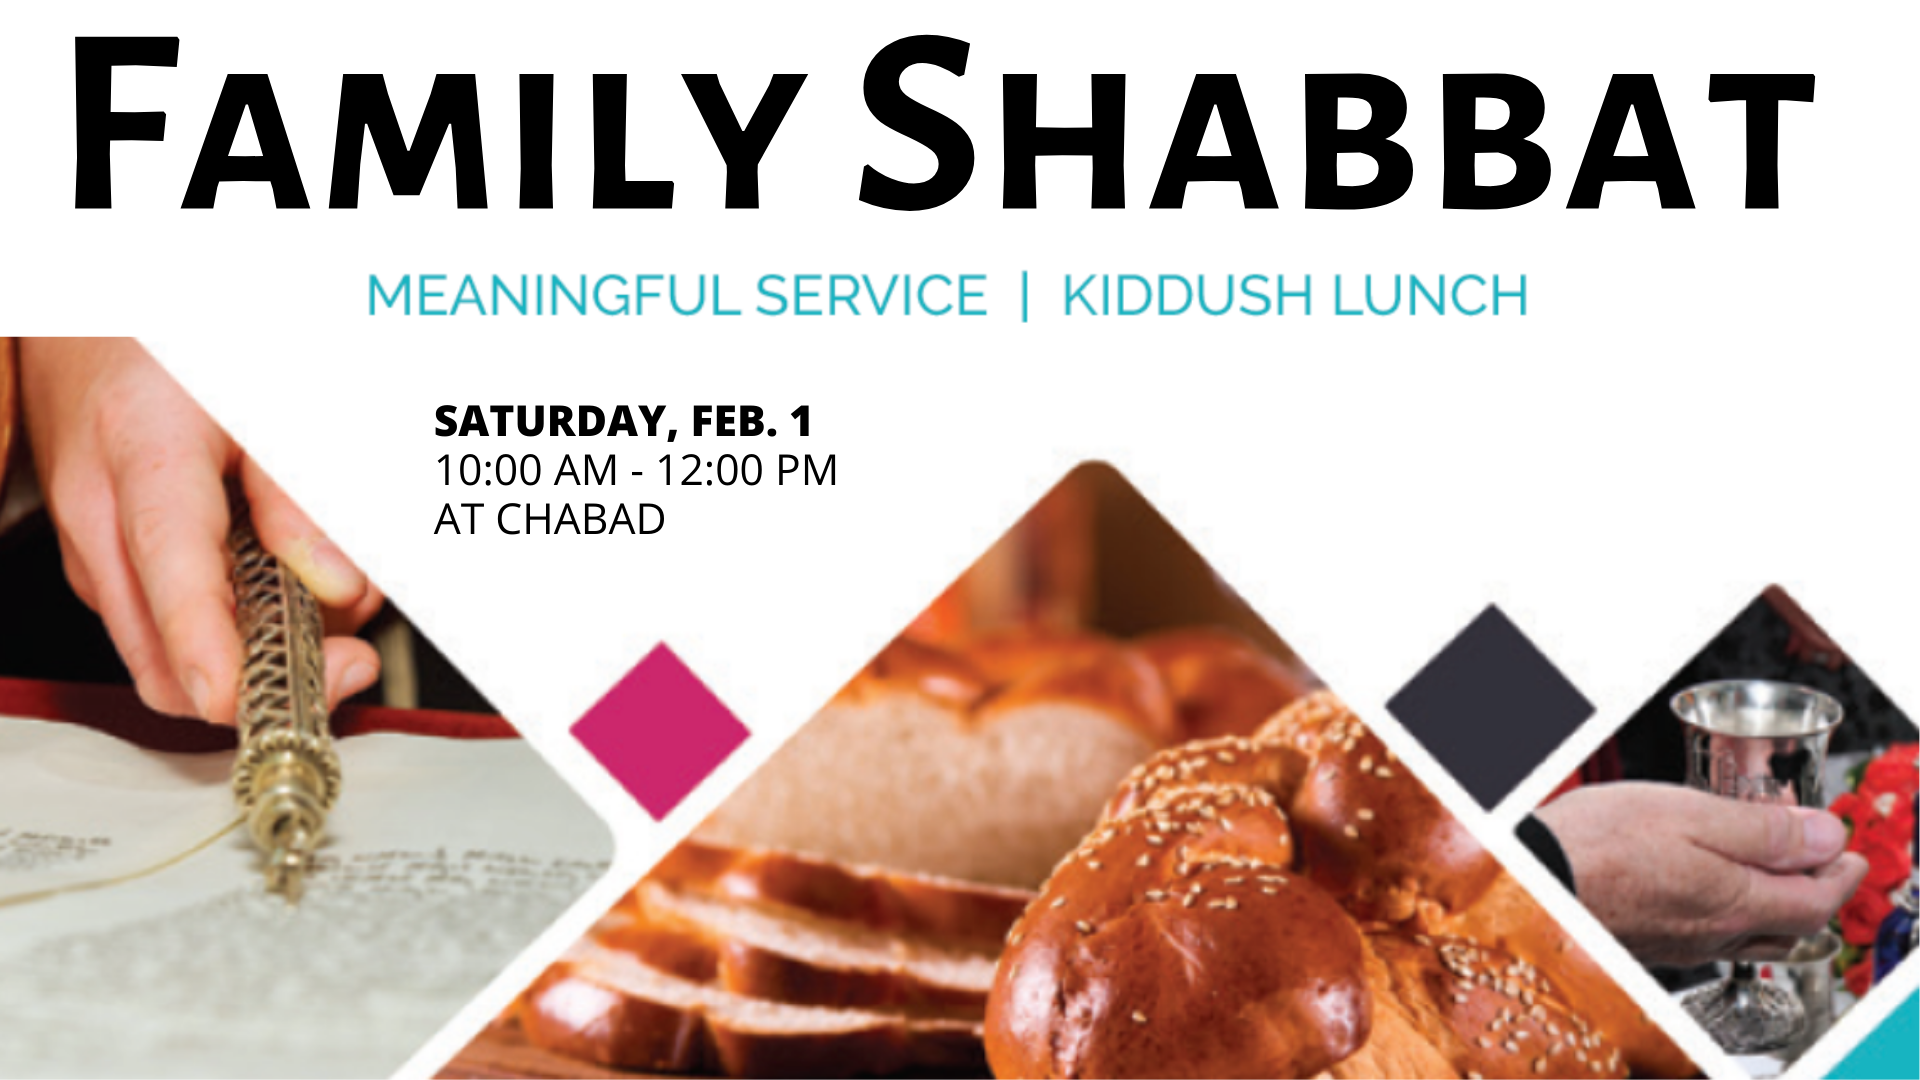 Family Shabbat Fb Event_FEB.png